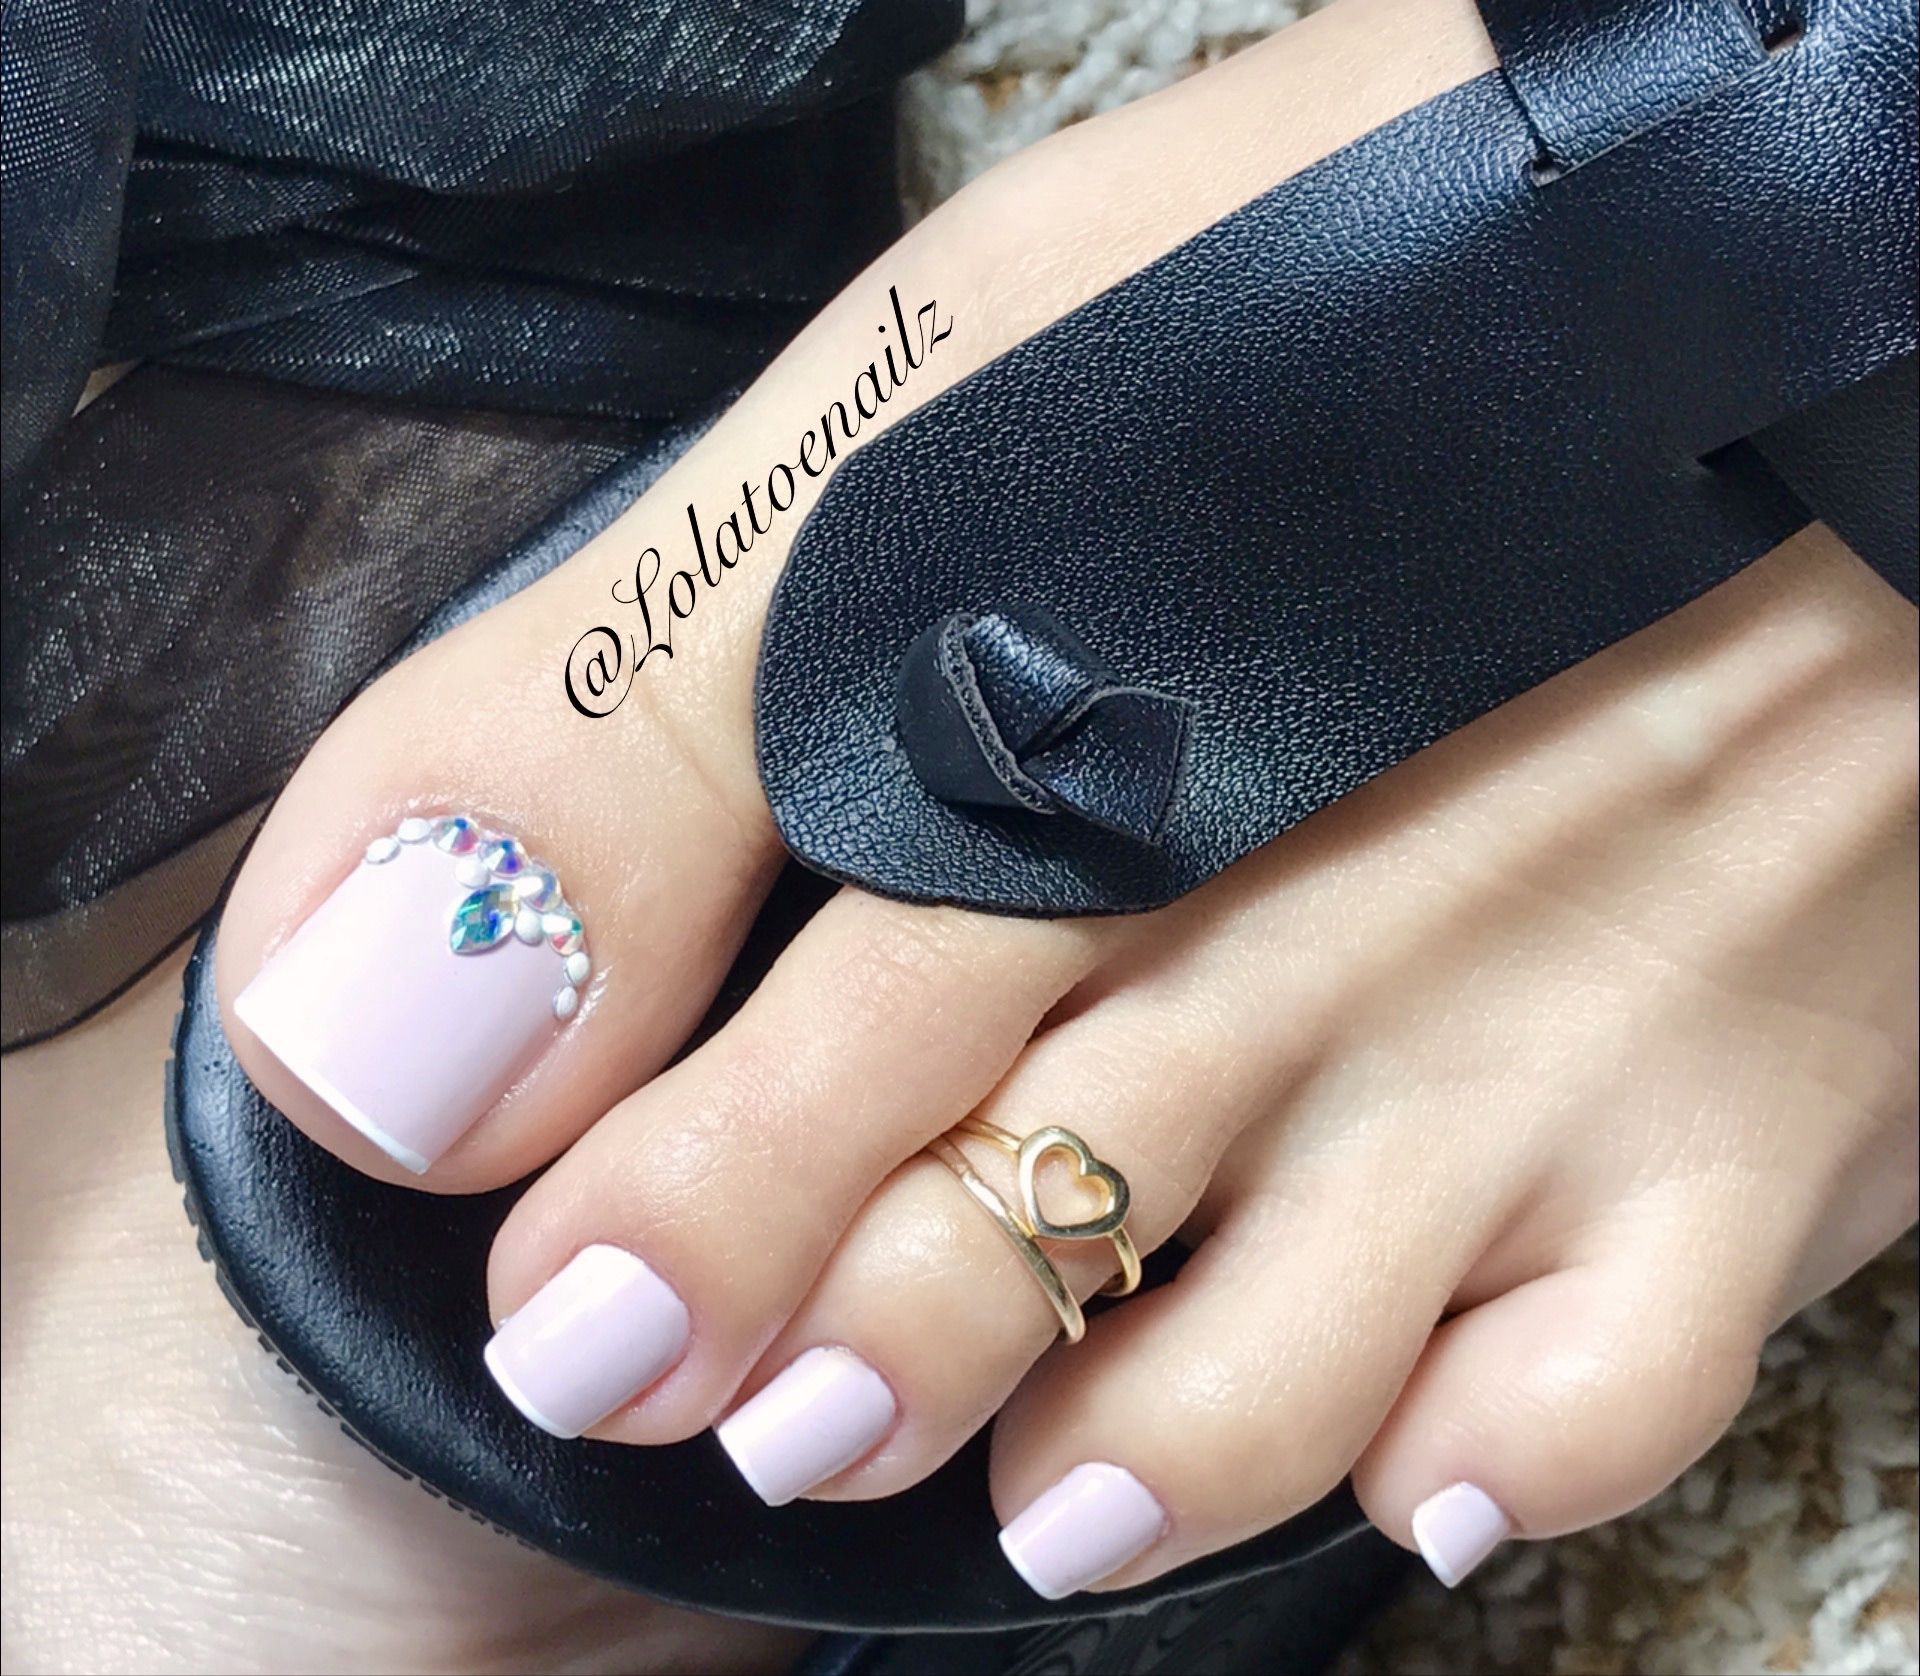 French Pedicure with design stones | Toe nail designs. | Pinterest ...